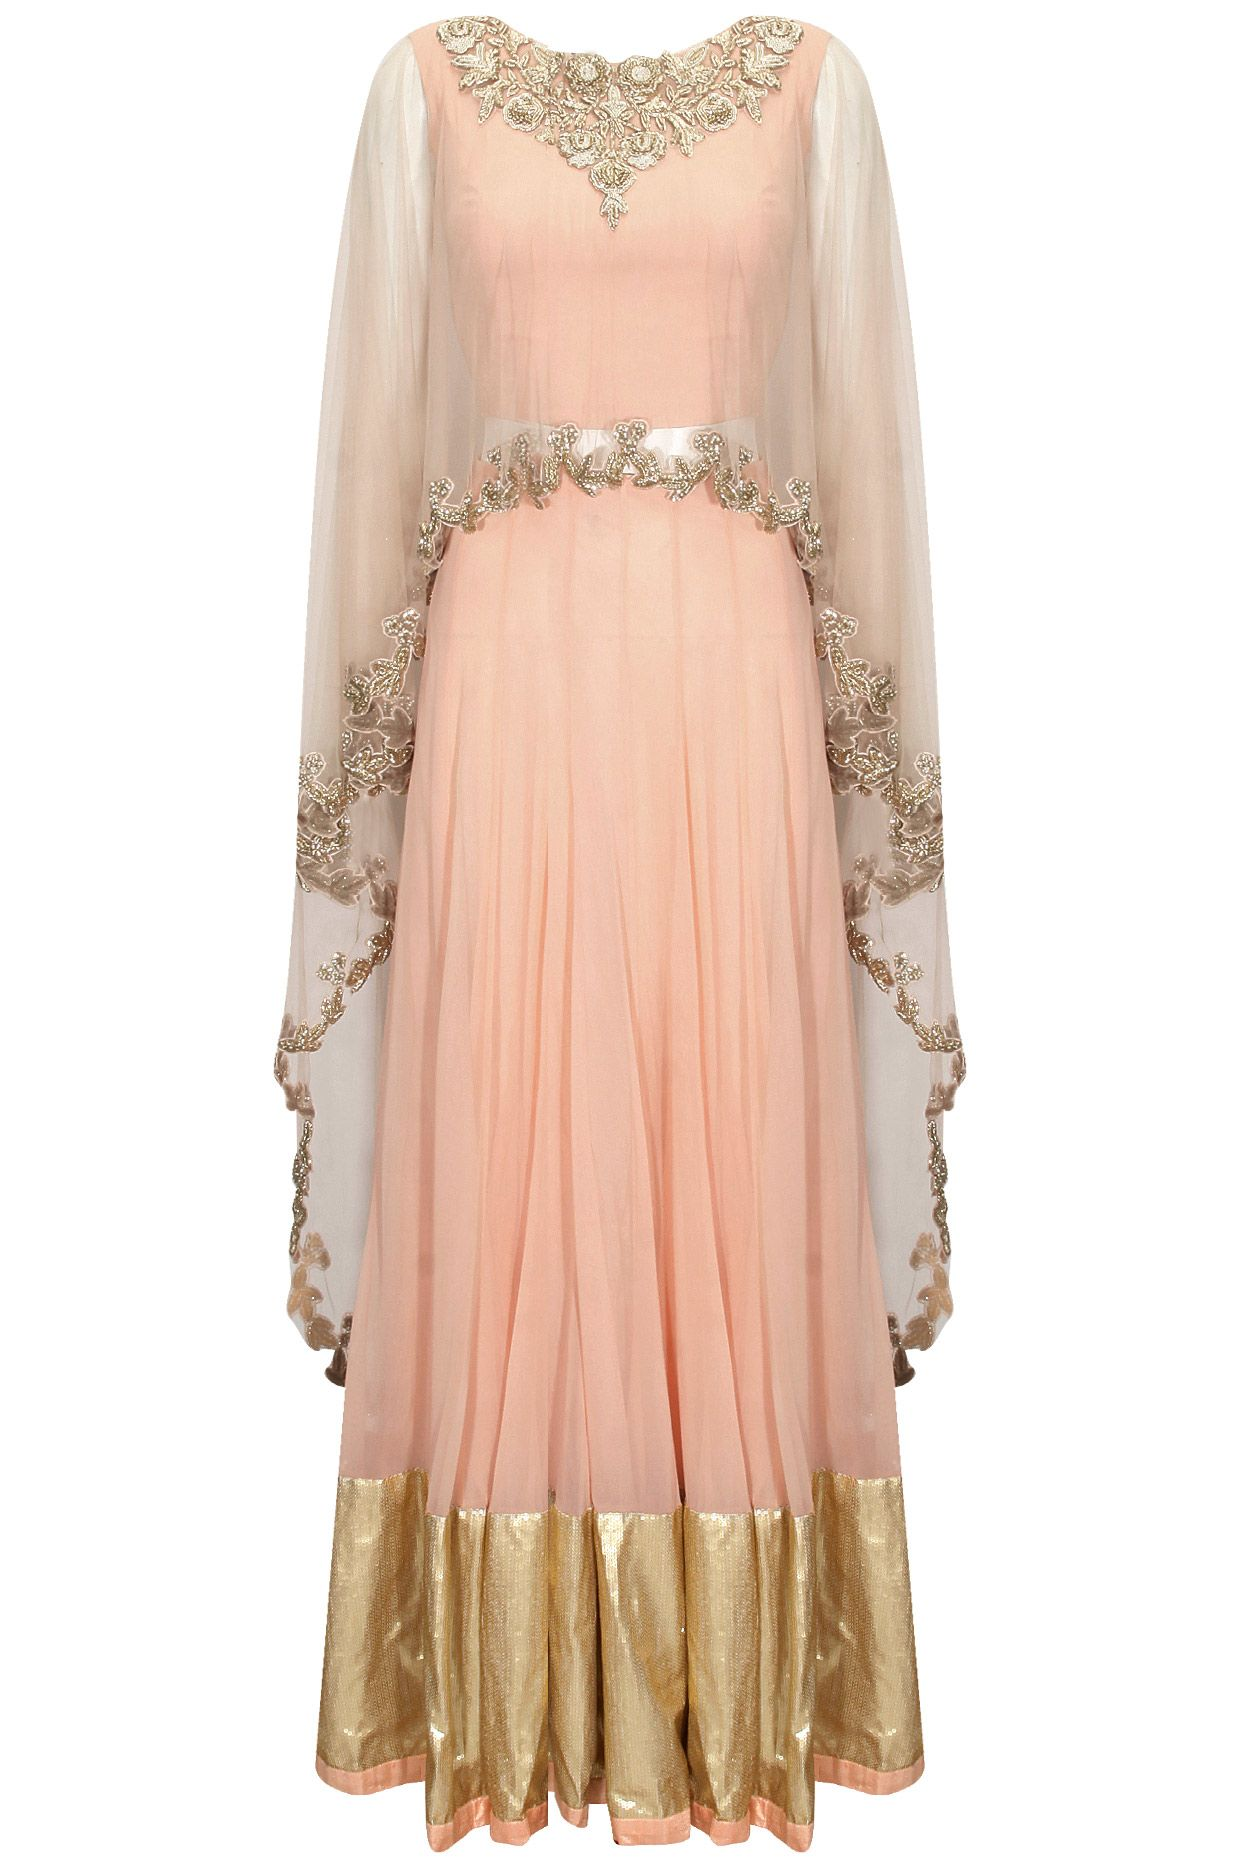 Pink Embroidered Asymmetric Cape Blouse With Gold Border